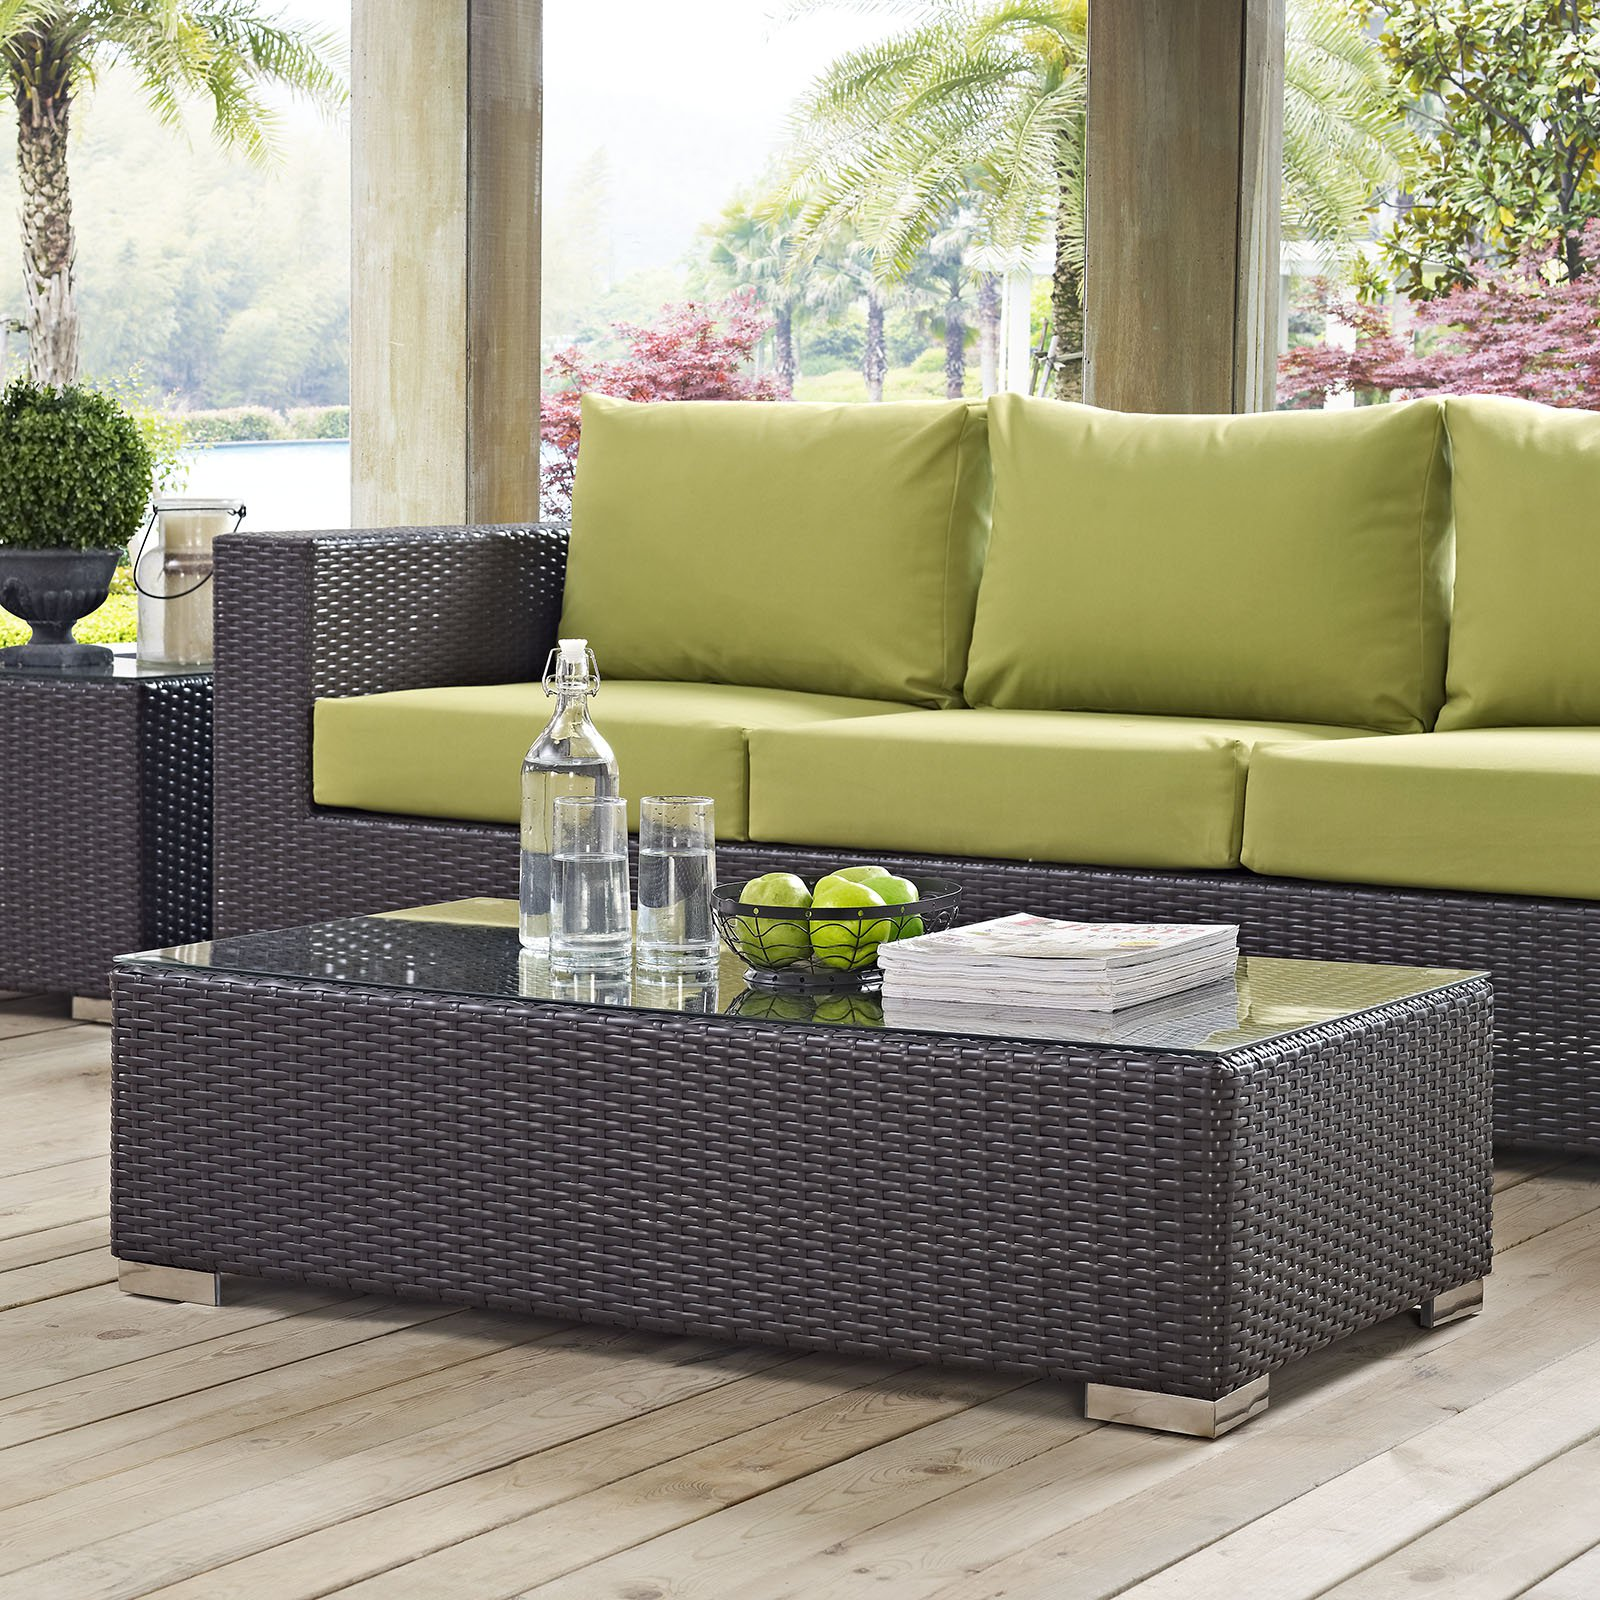 Modway Convene Outdoor Patio Coffee Table in Espresso by Modway